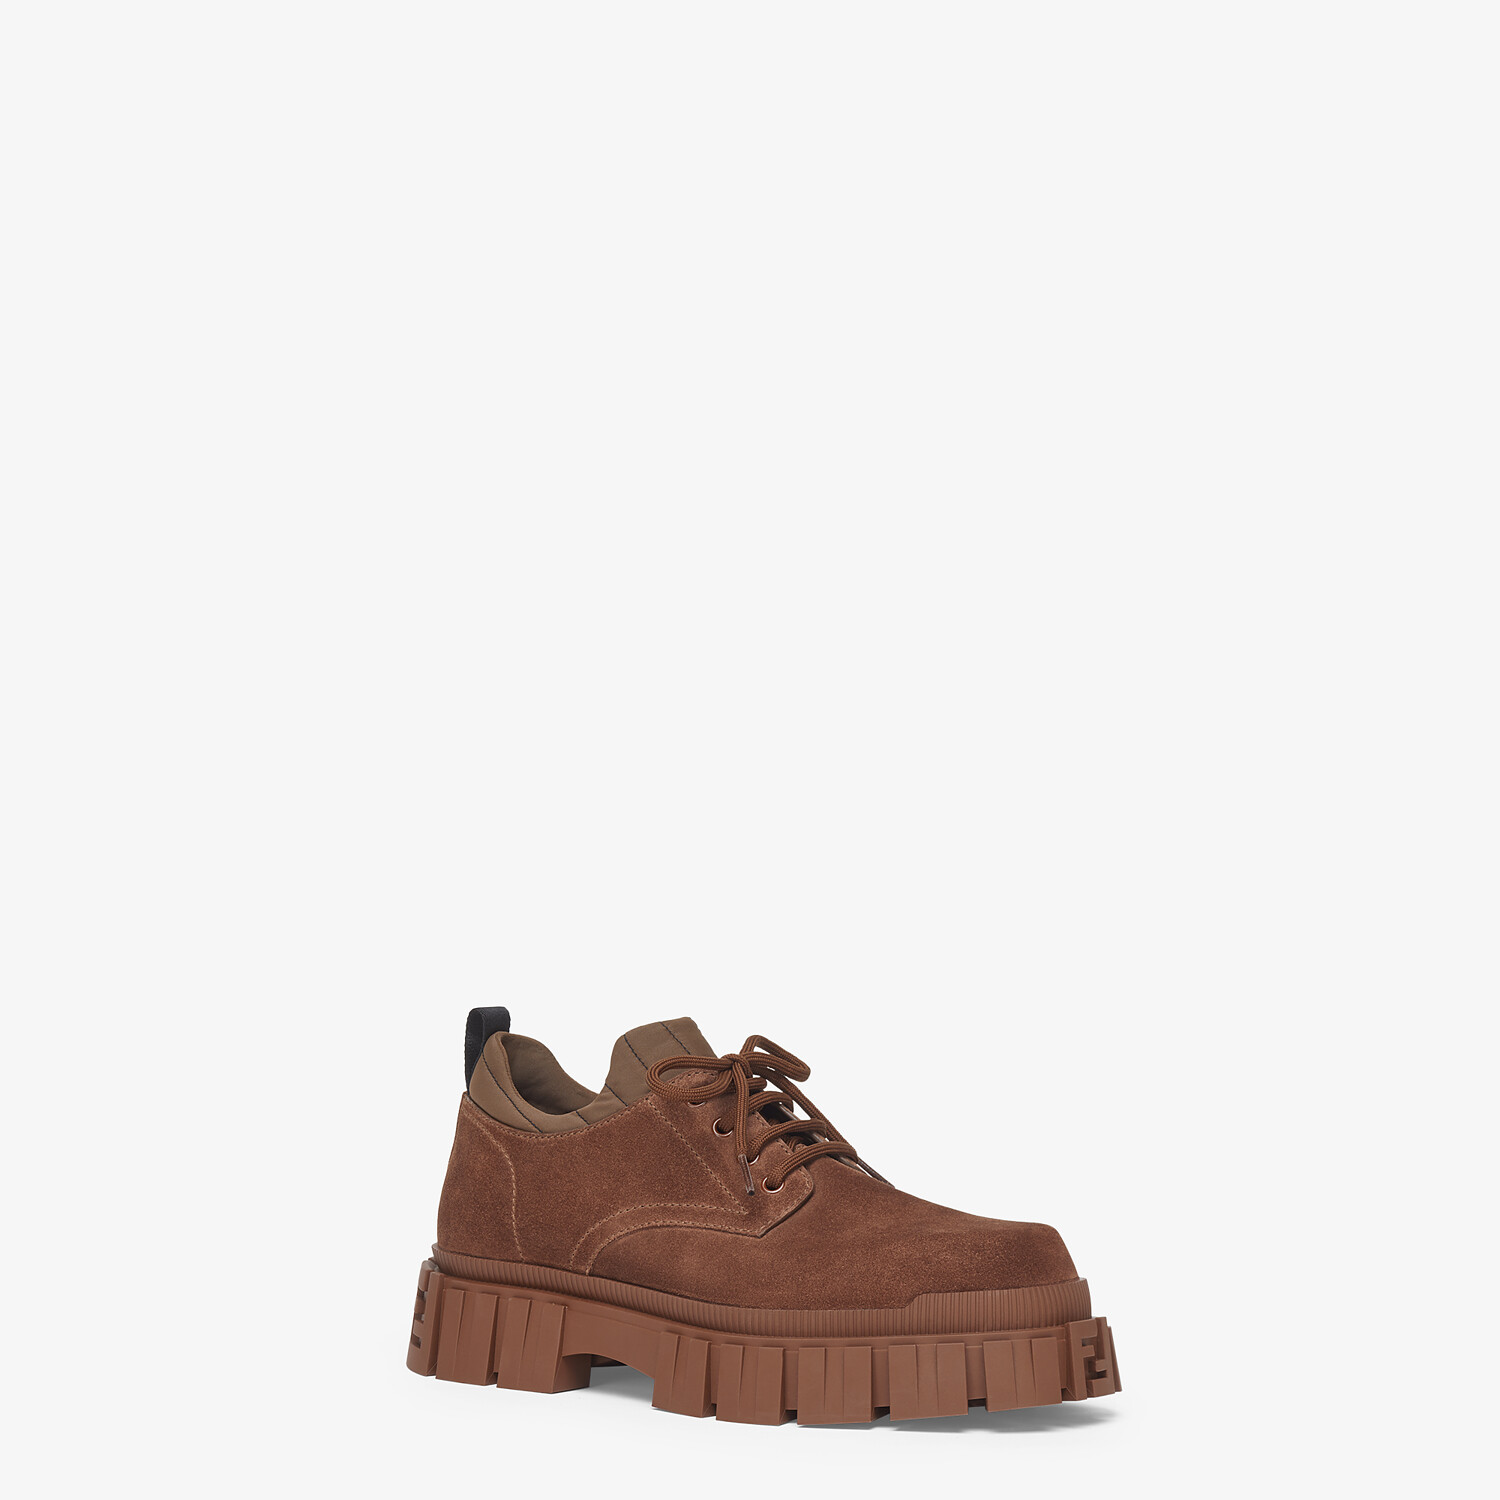 FENDI LACE-UP - Brown suede lace-ups - view 2 detail